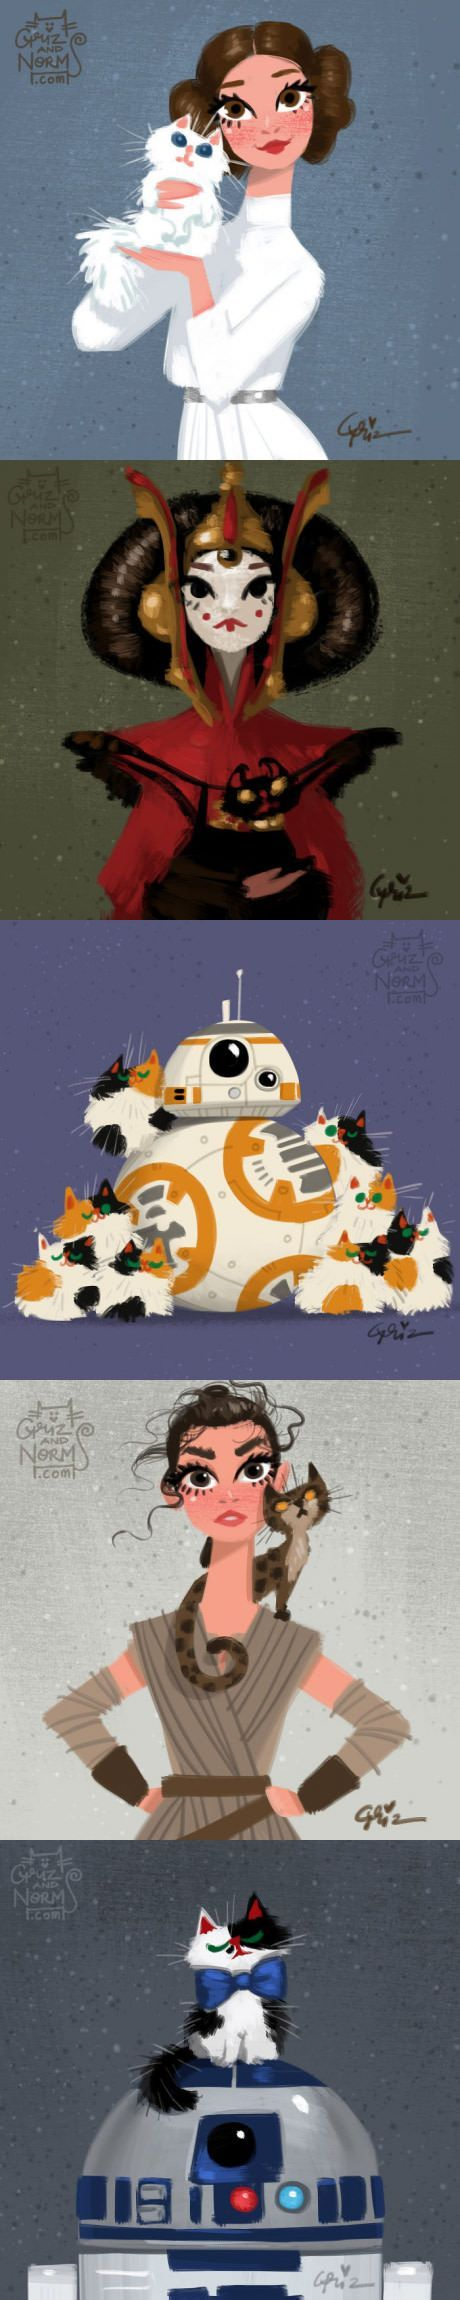 Artist From Walt Disney Animation Studio Draws Star Wars Characters With Cats (by grizandnorm)